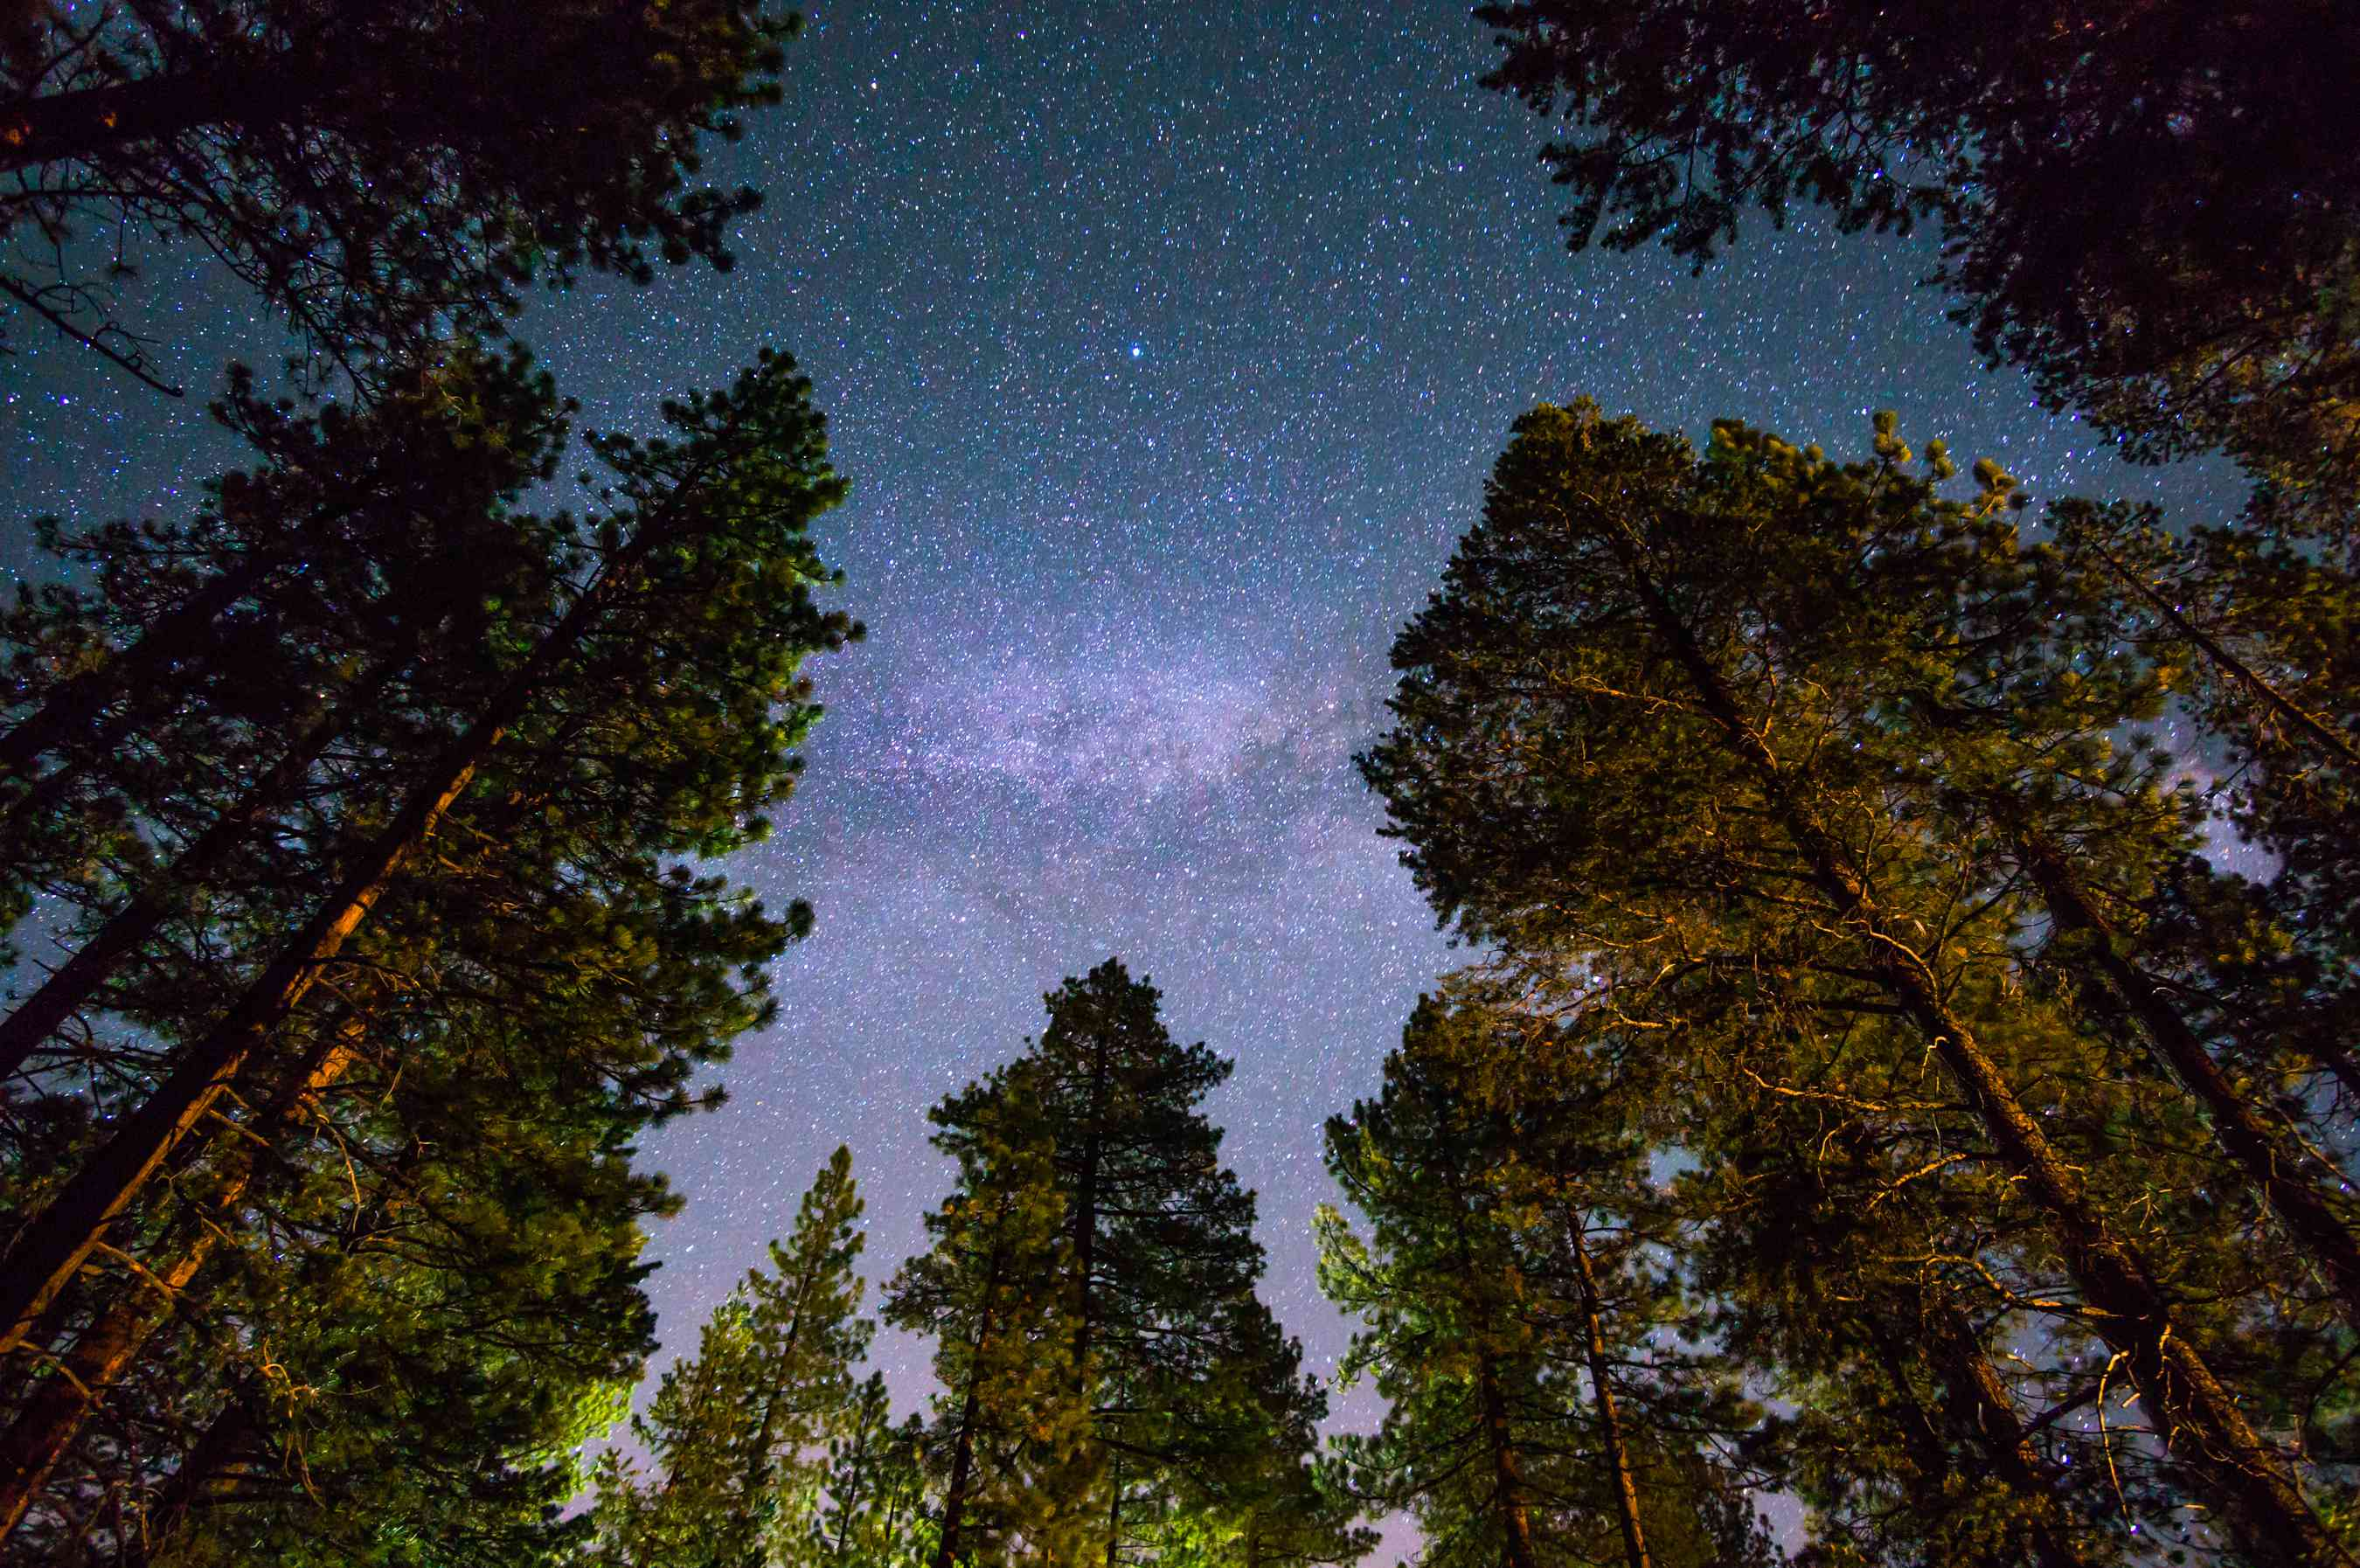 redwood trees at Lake Tahoe under a night sky